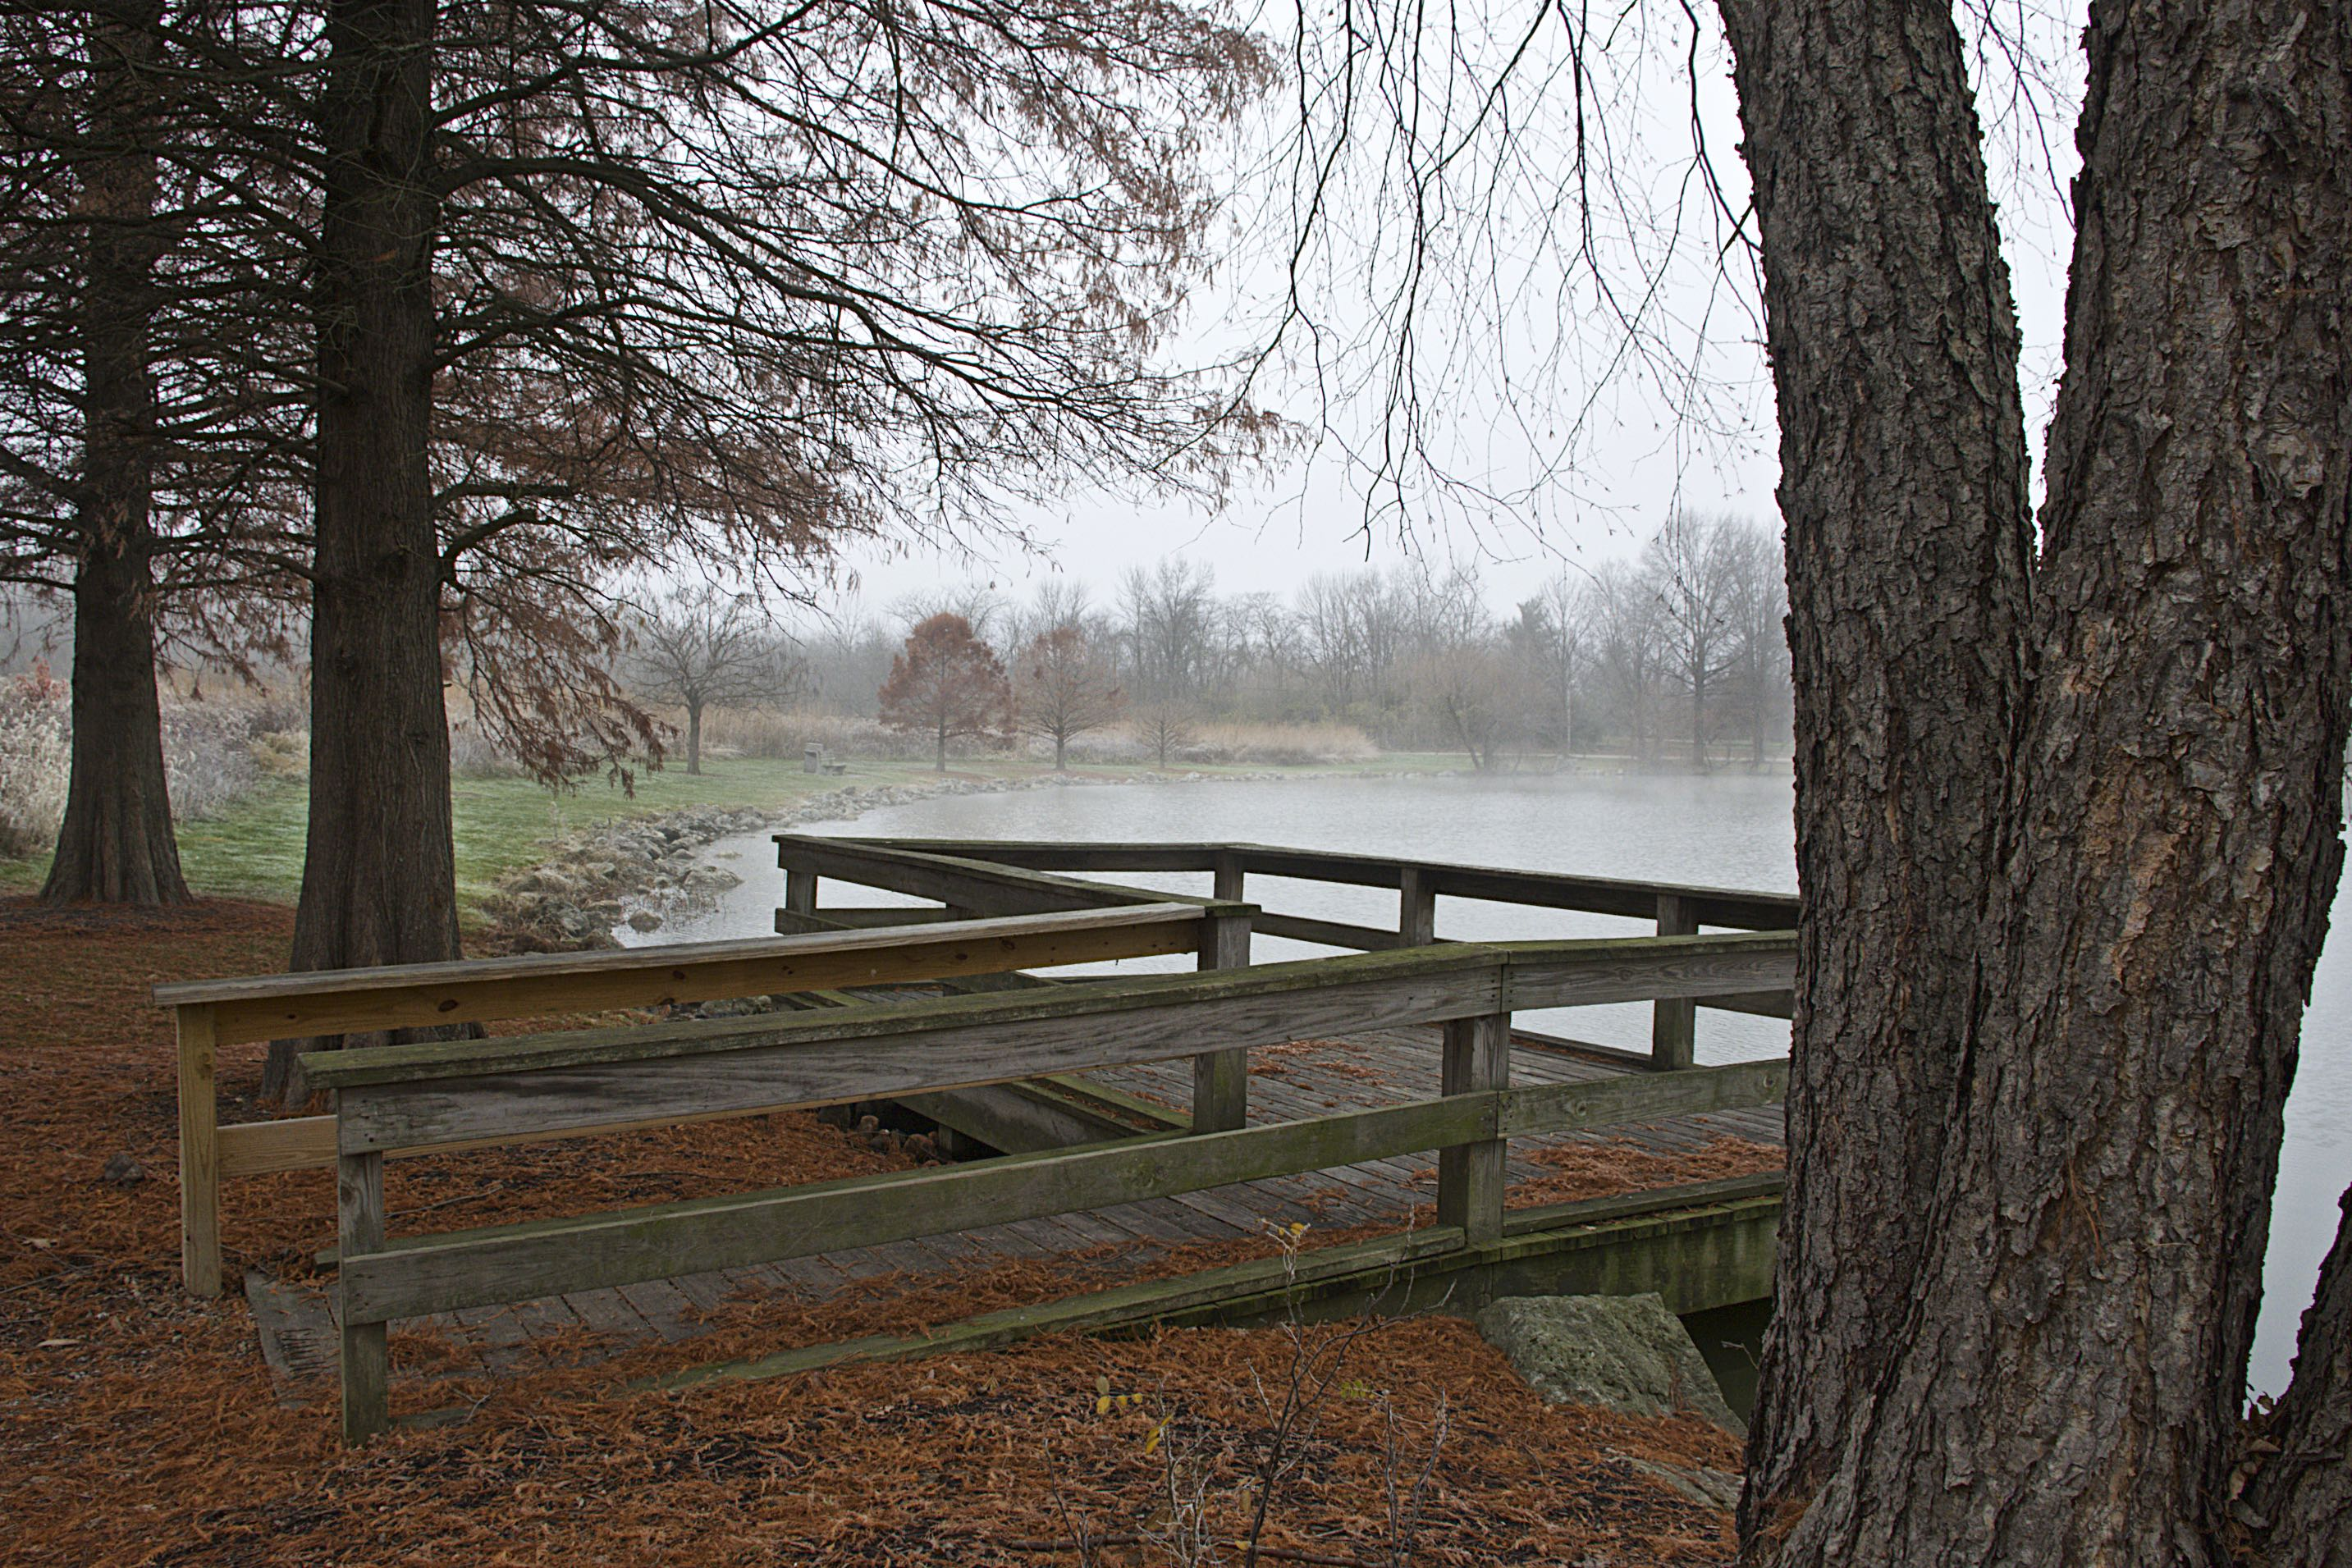 The dock at the pond at Triple Creek is covered with leaves and pine needles during fall.